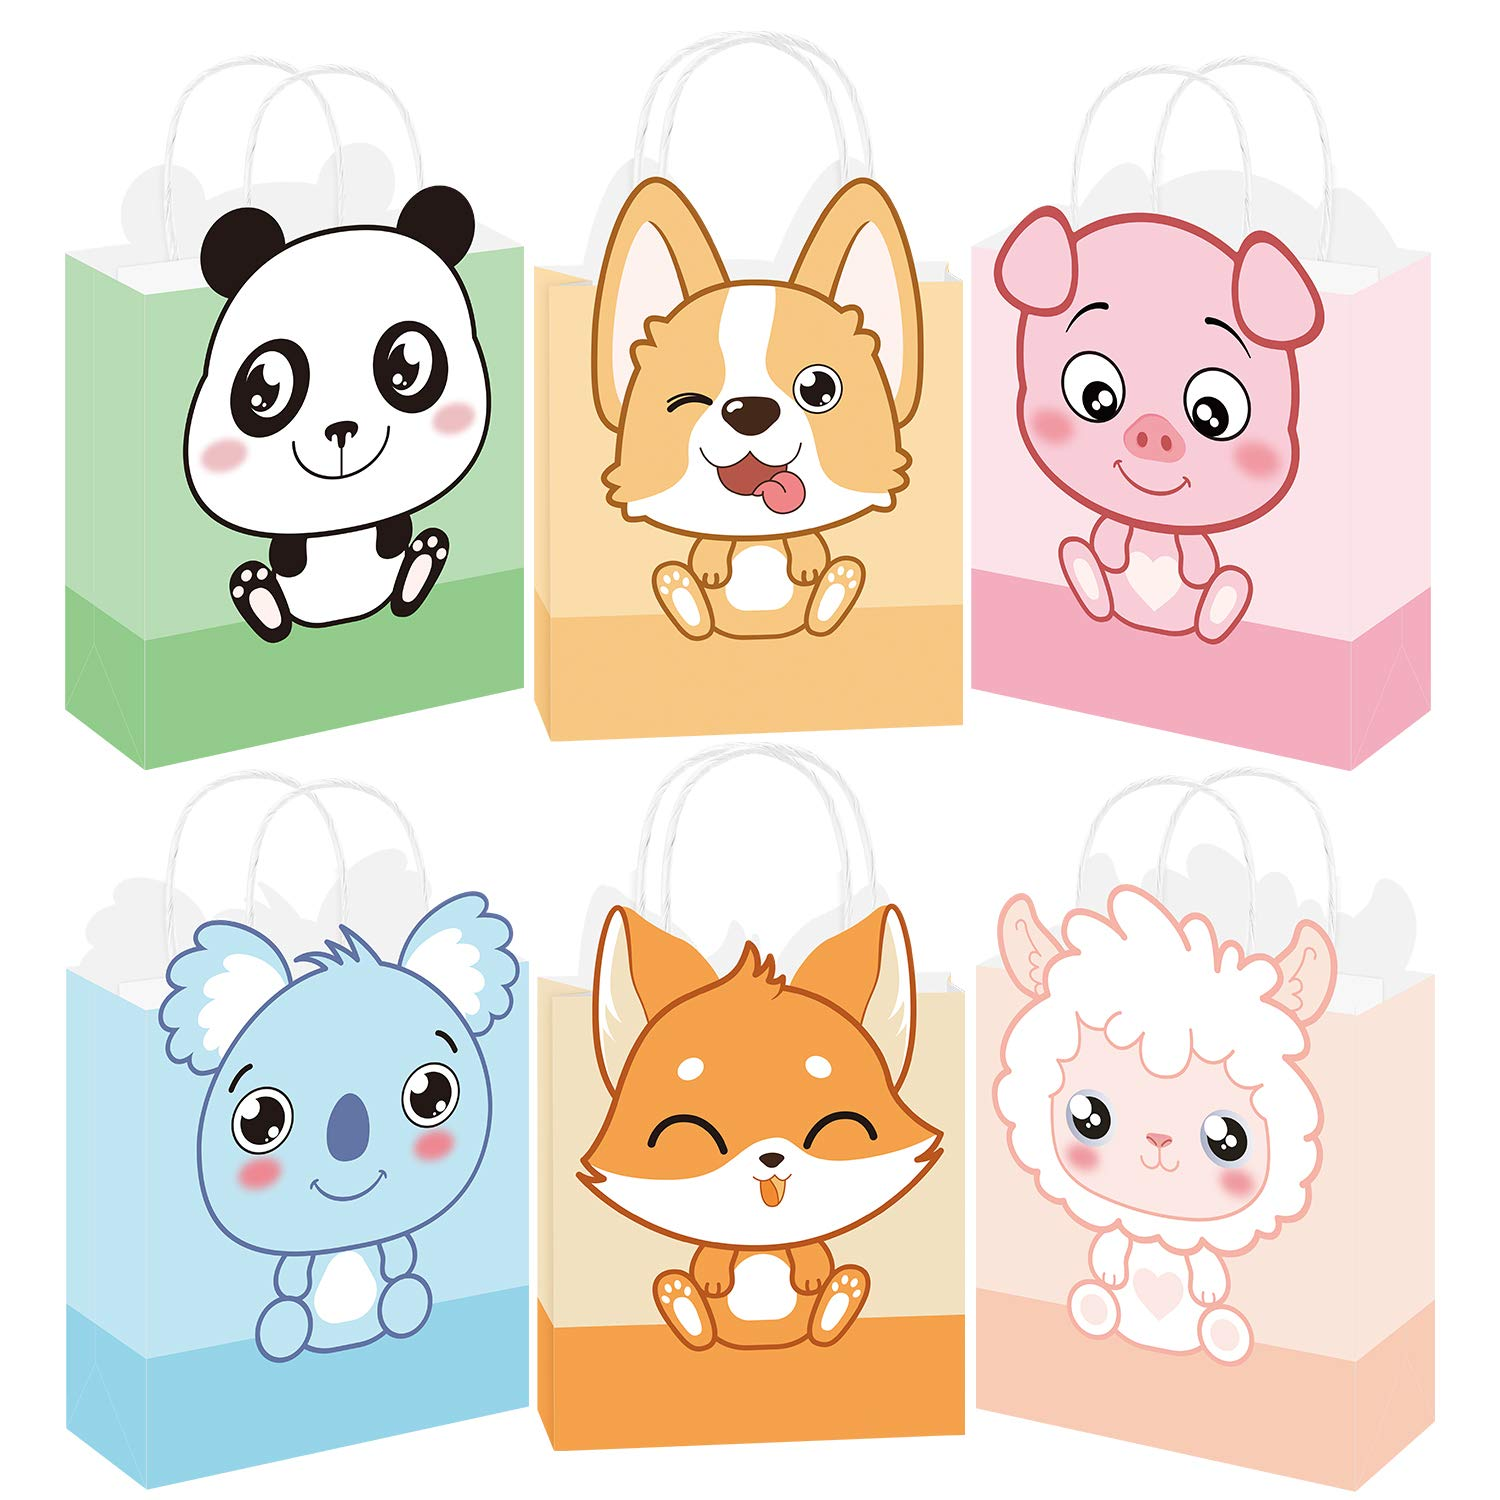 Whaline 18pcs Animal Bags Craft Paper Bag with Handle Cartoon Gift Treat Bags Candy Bags Kid Shopping Bags Fox, Corgi, Panda, Pig, Koala, Sheep for Party Baby Shower Birthday Favor Decorations Supply